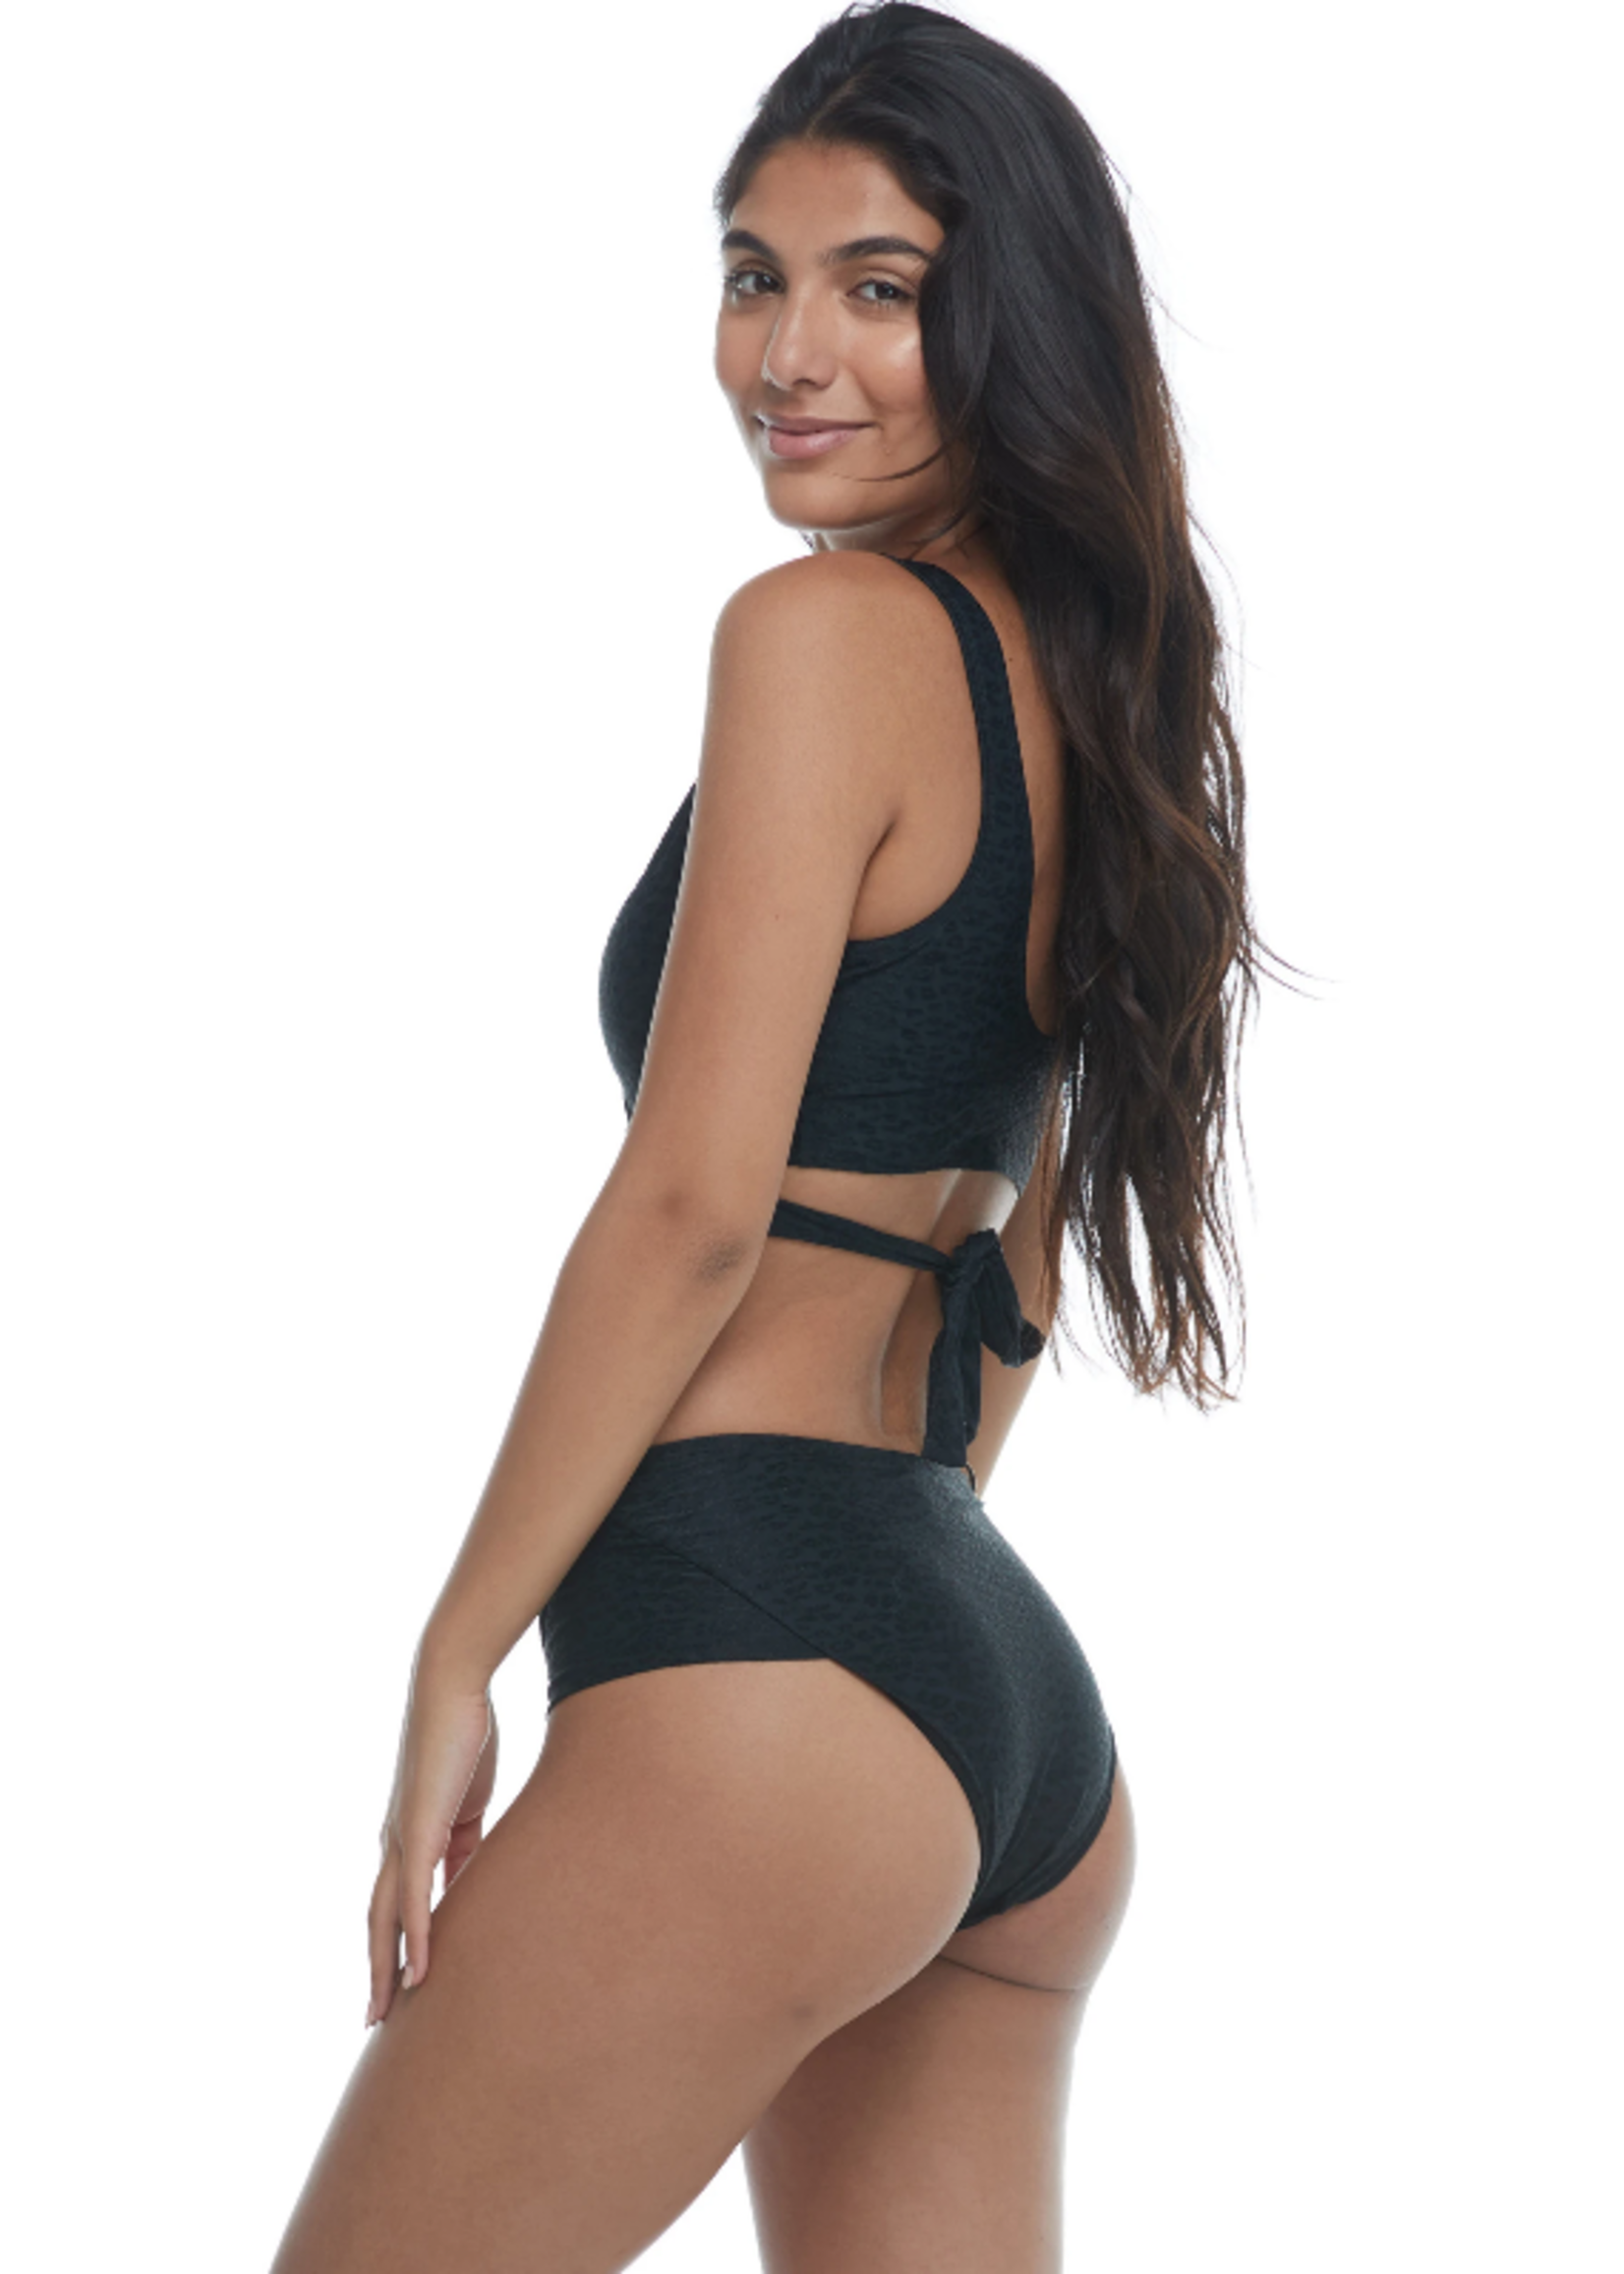 Body Glove Panther Coco Bottom - Black